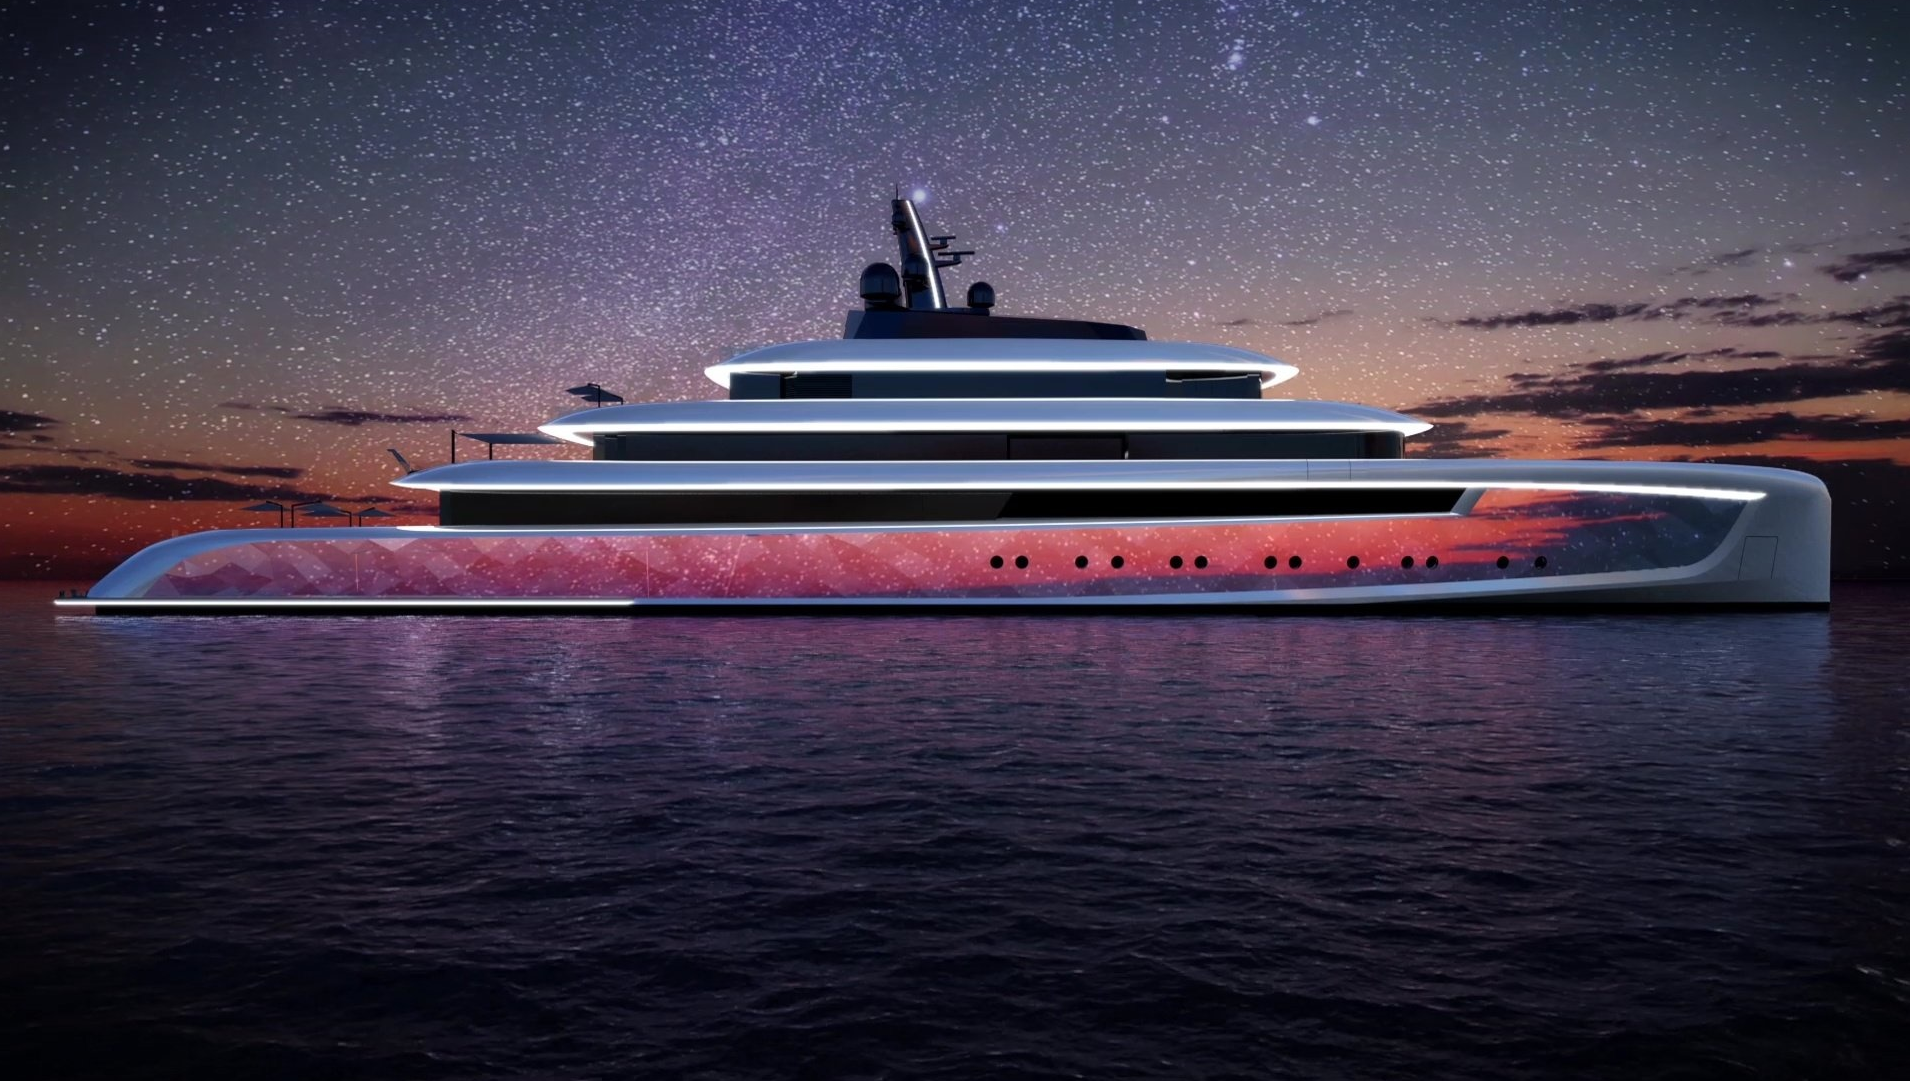 New renderings of revolutionary moonstone project yacht harbour